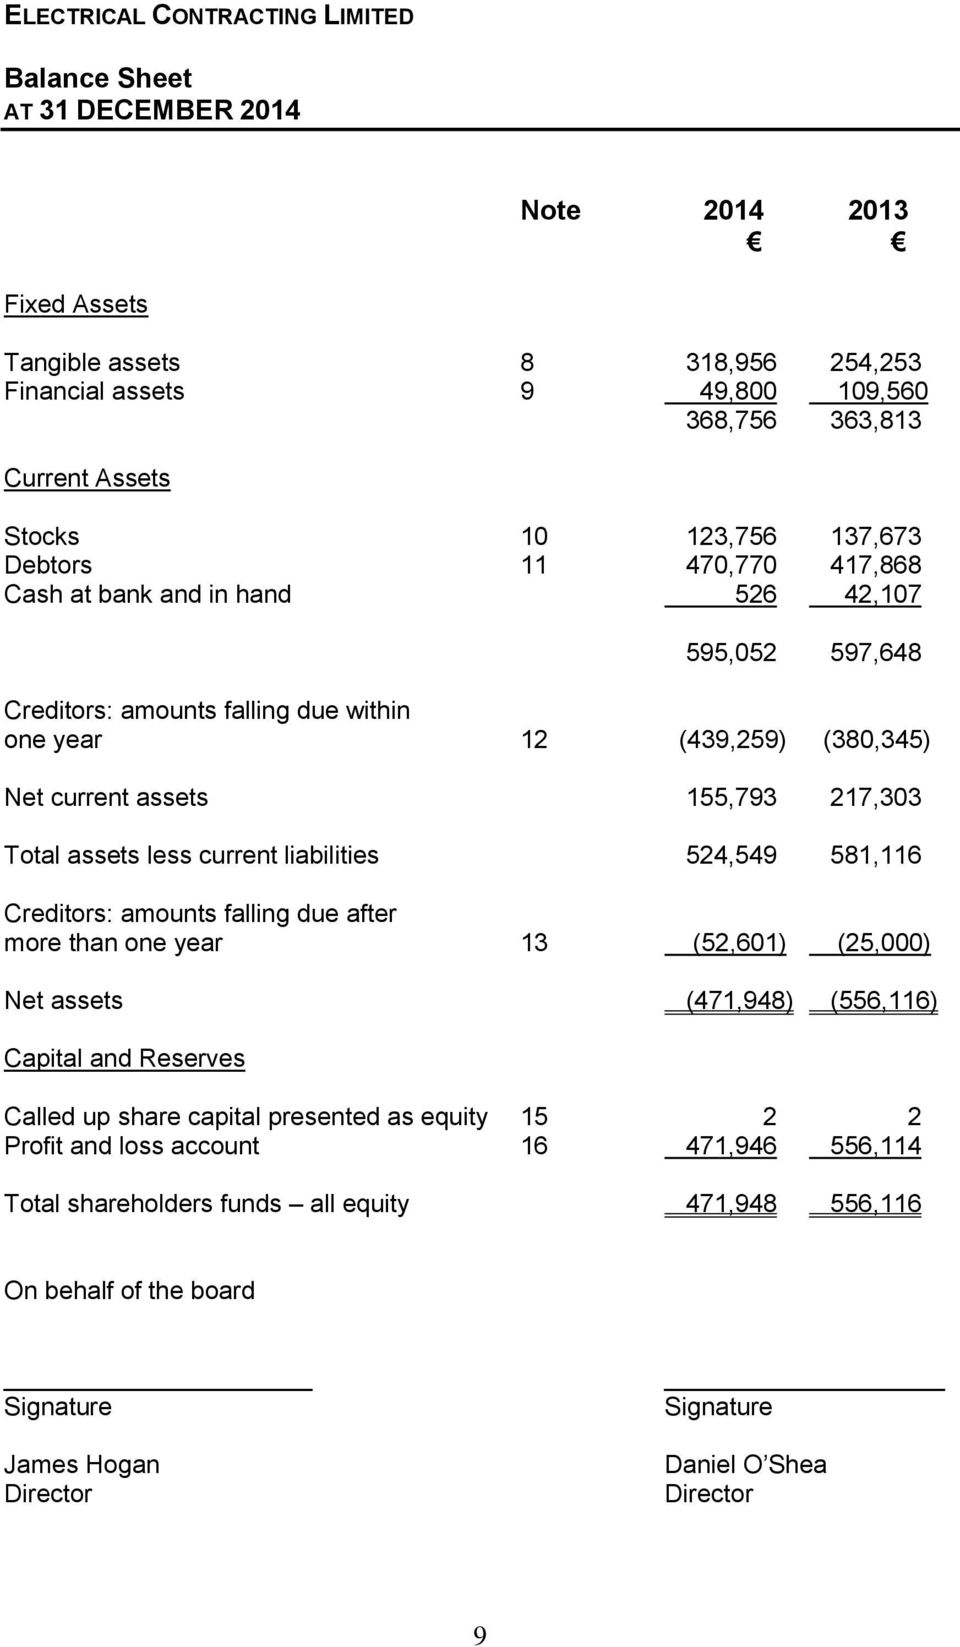 current liabilities 524,549 581,116 Creditors: amounts falling due after more than one year 13 (52,601) (25,000) Net assets (471,948) (556,116) Capital and Reserves Called up share capital